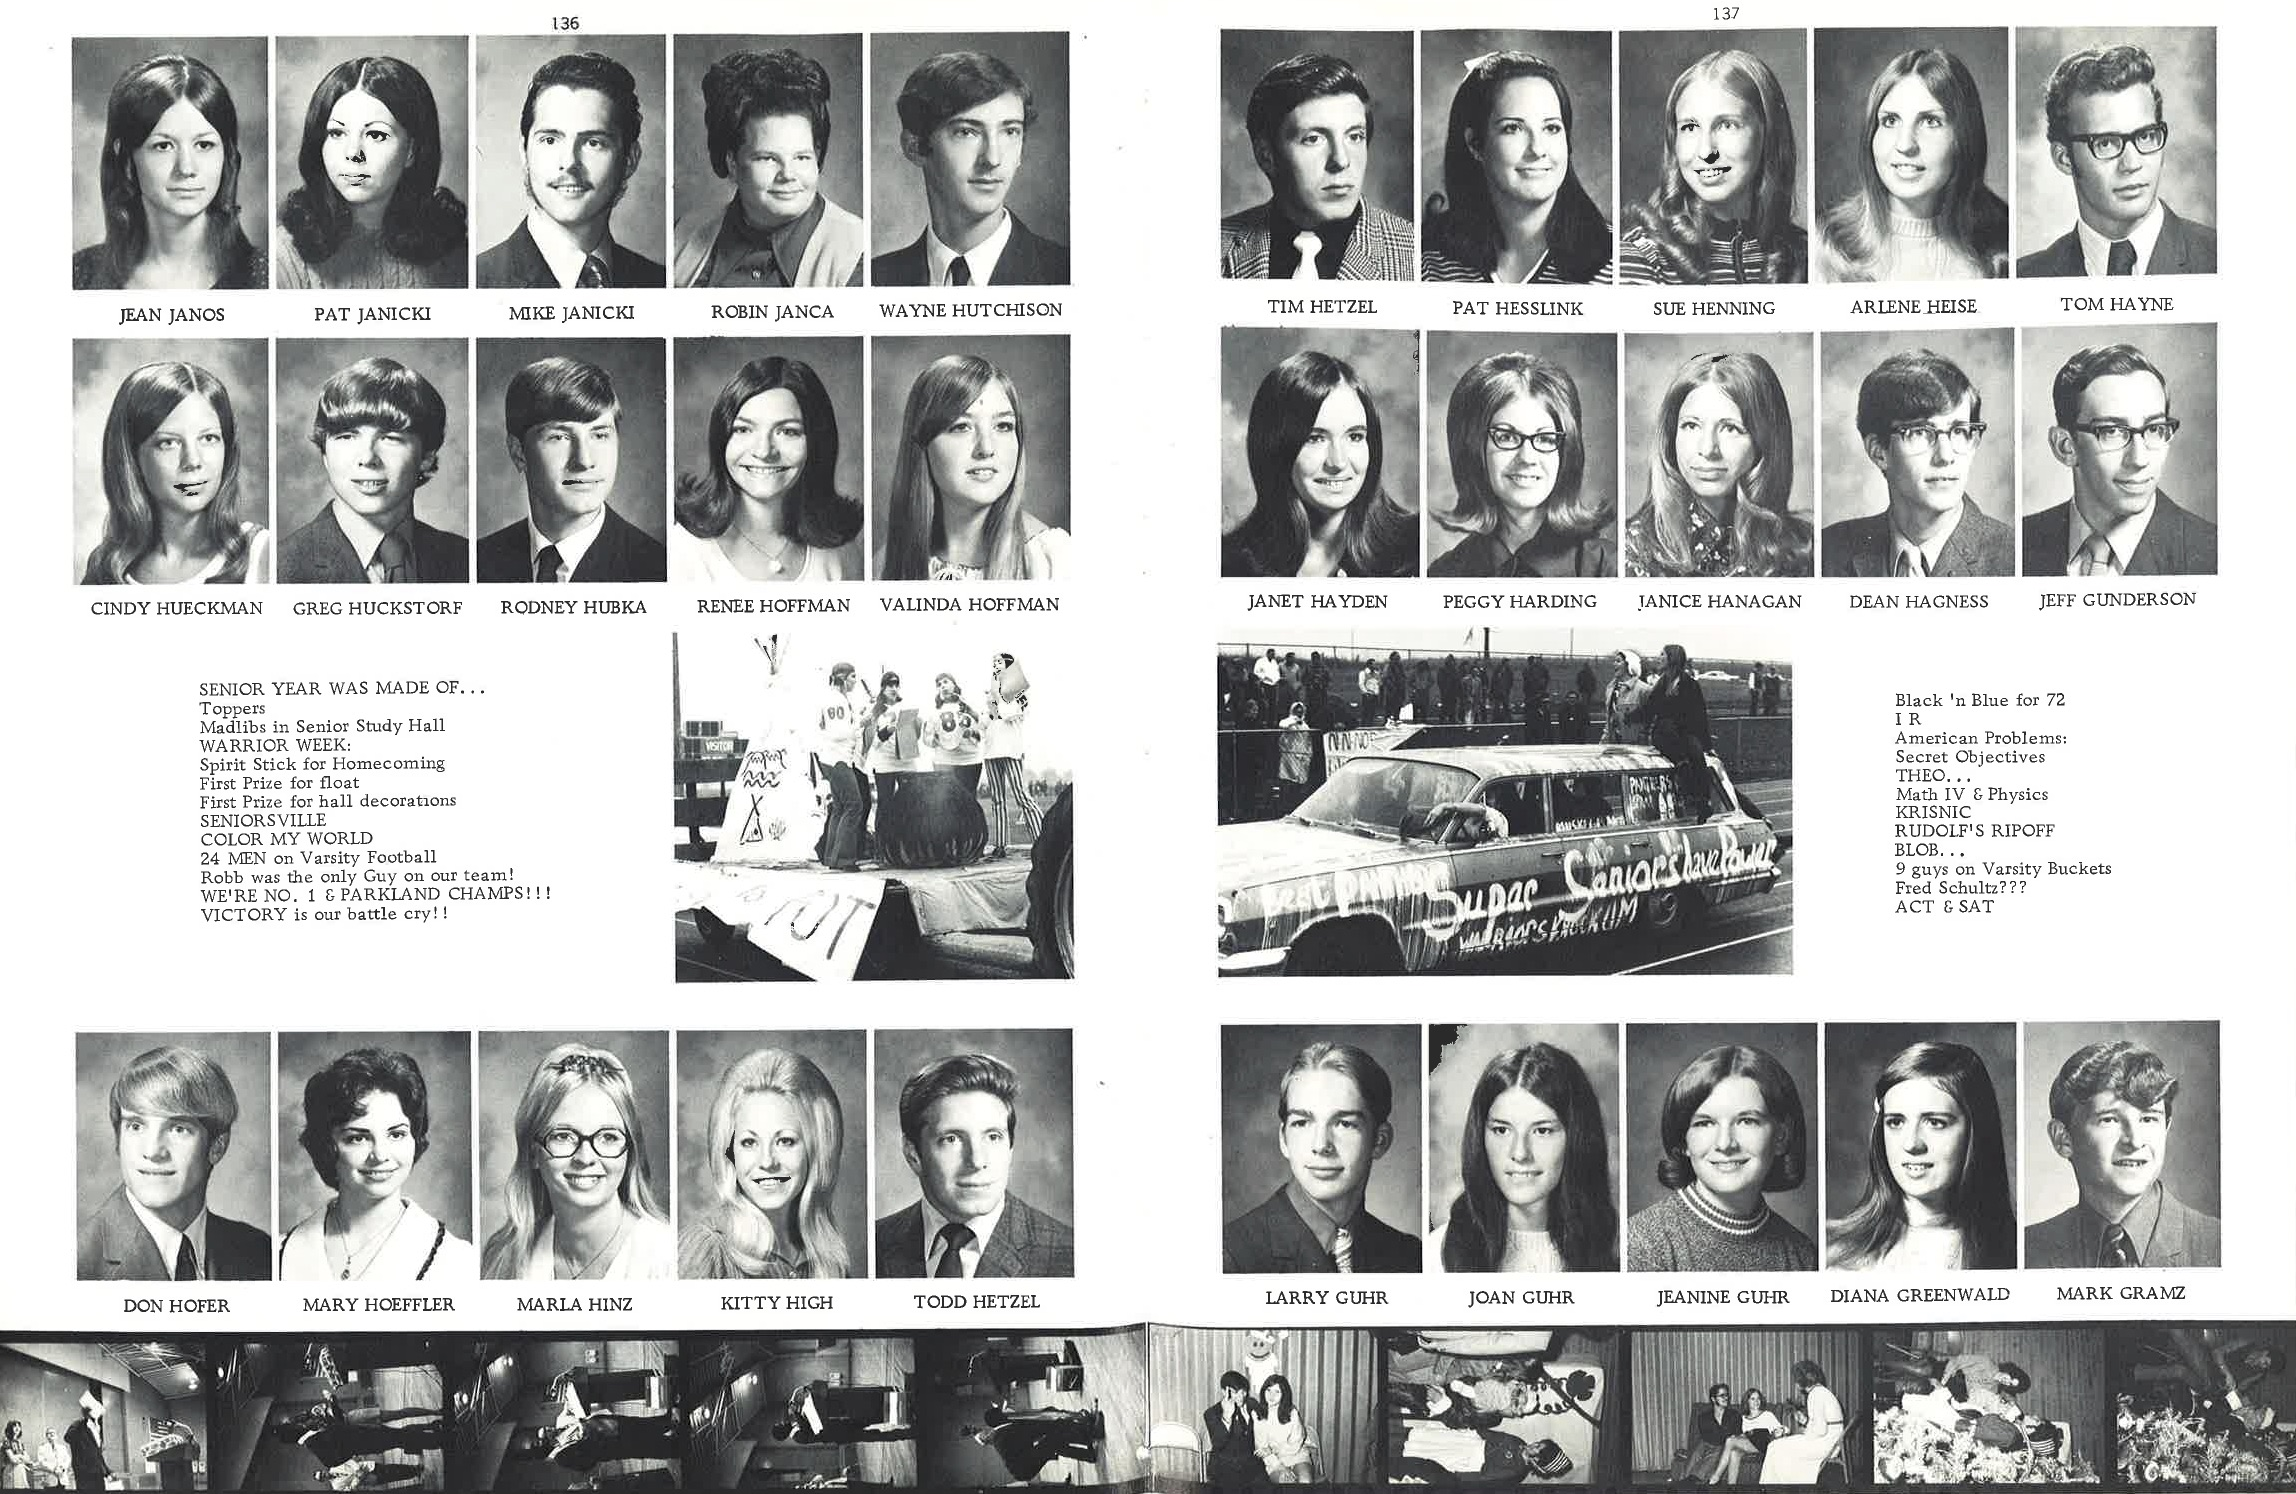 1972_Yearbook_136-137.jpg